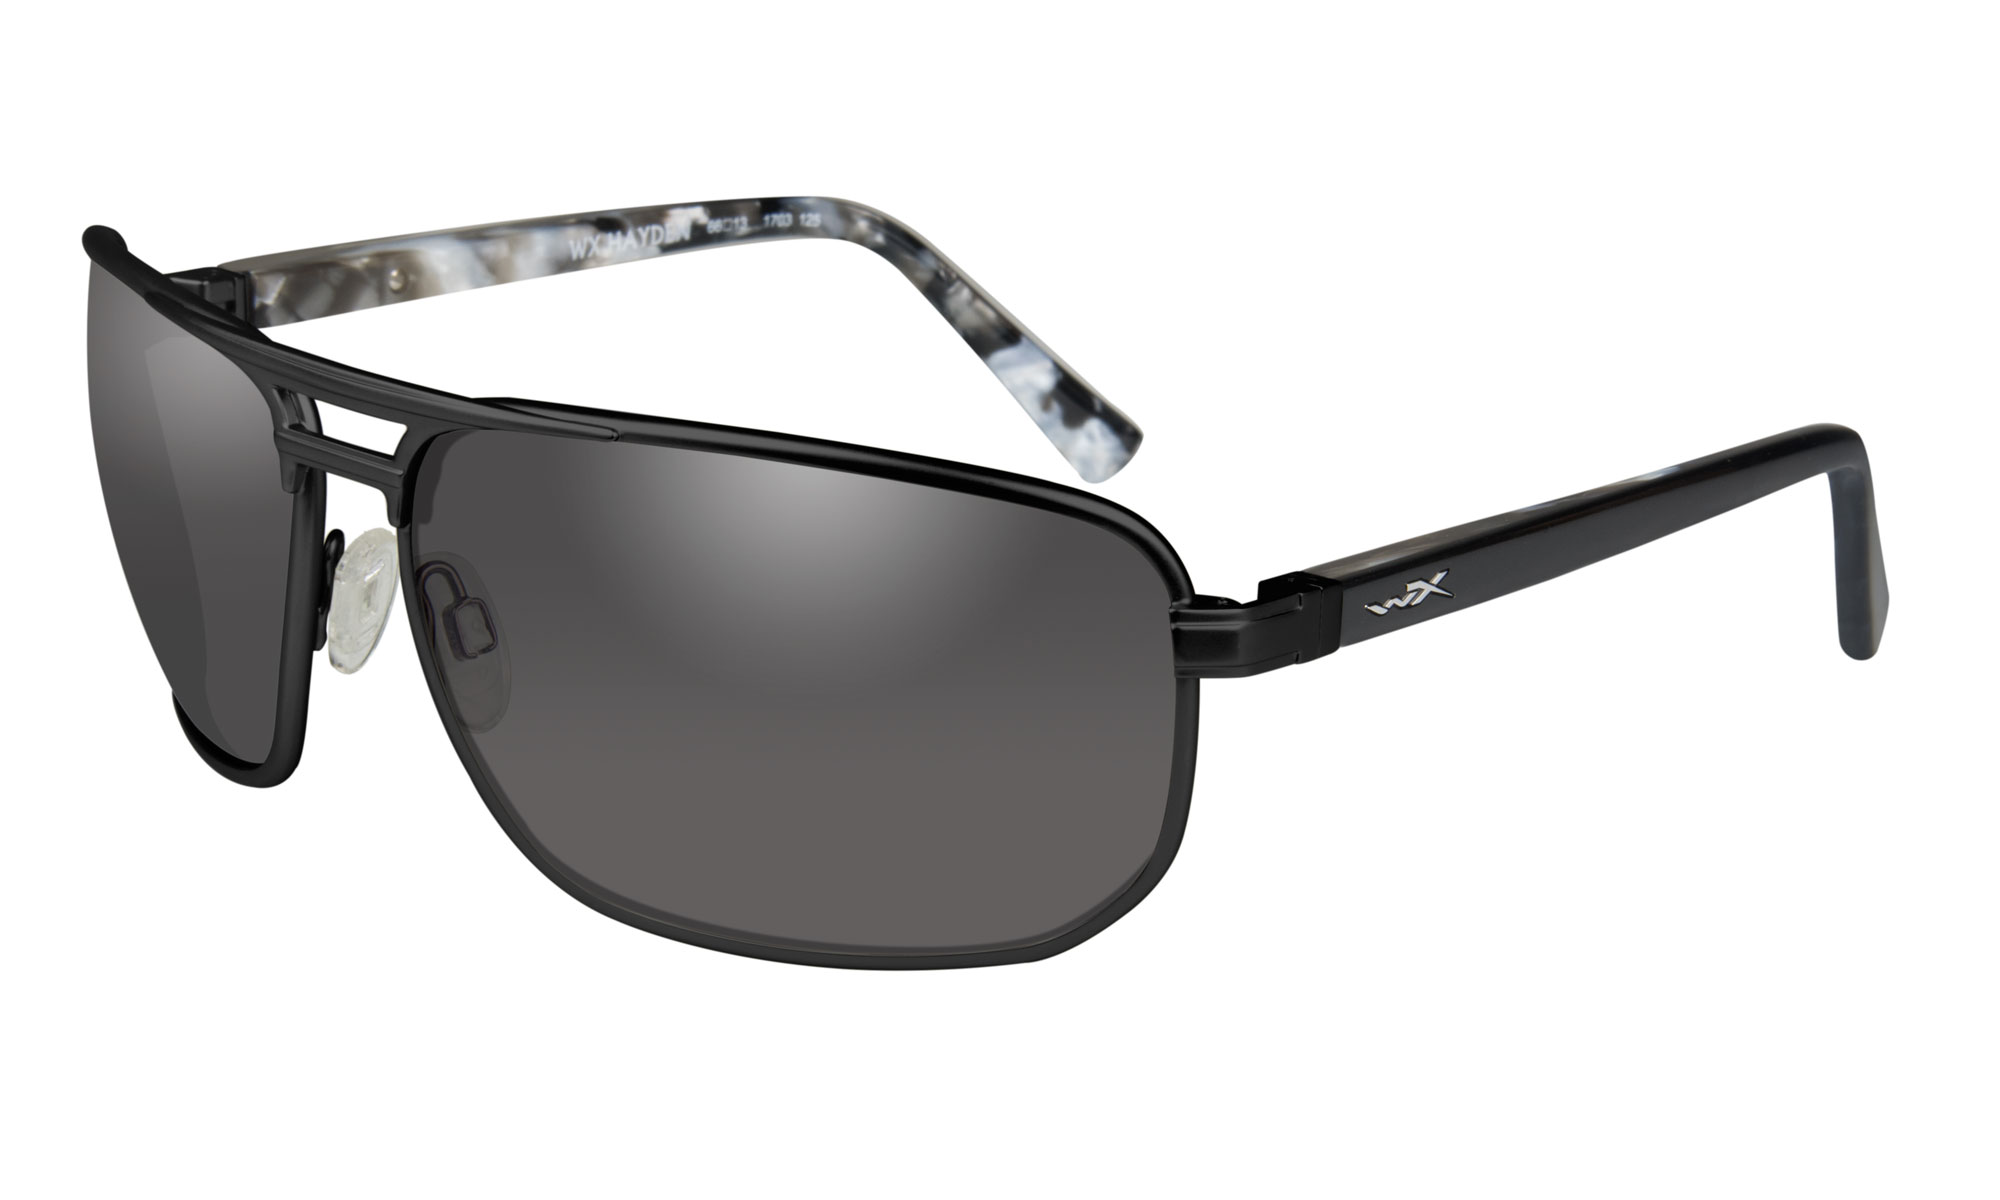 8beb200f7f97 Wiley-X WX Hayden Matte Black with Smoke Grey Lenses | Wiley X